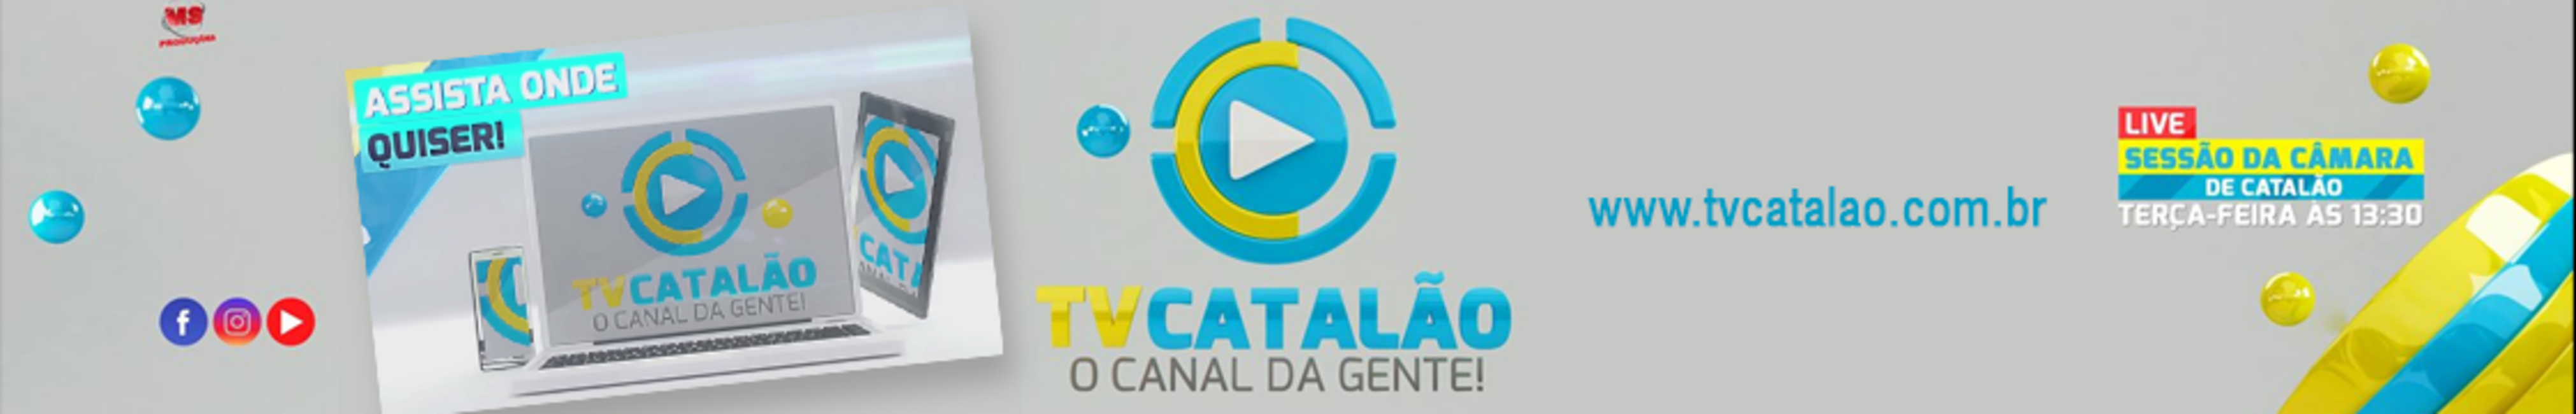 TV CATALÃO